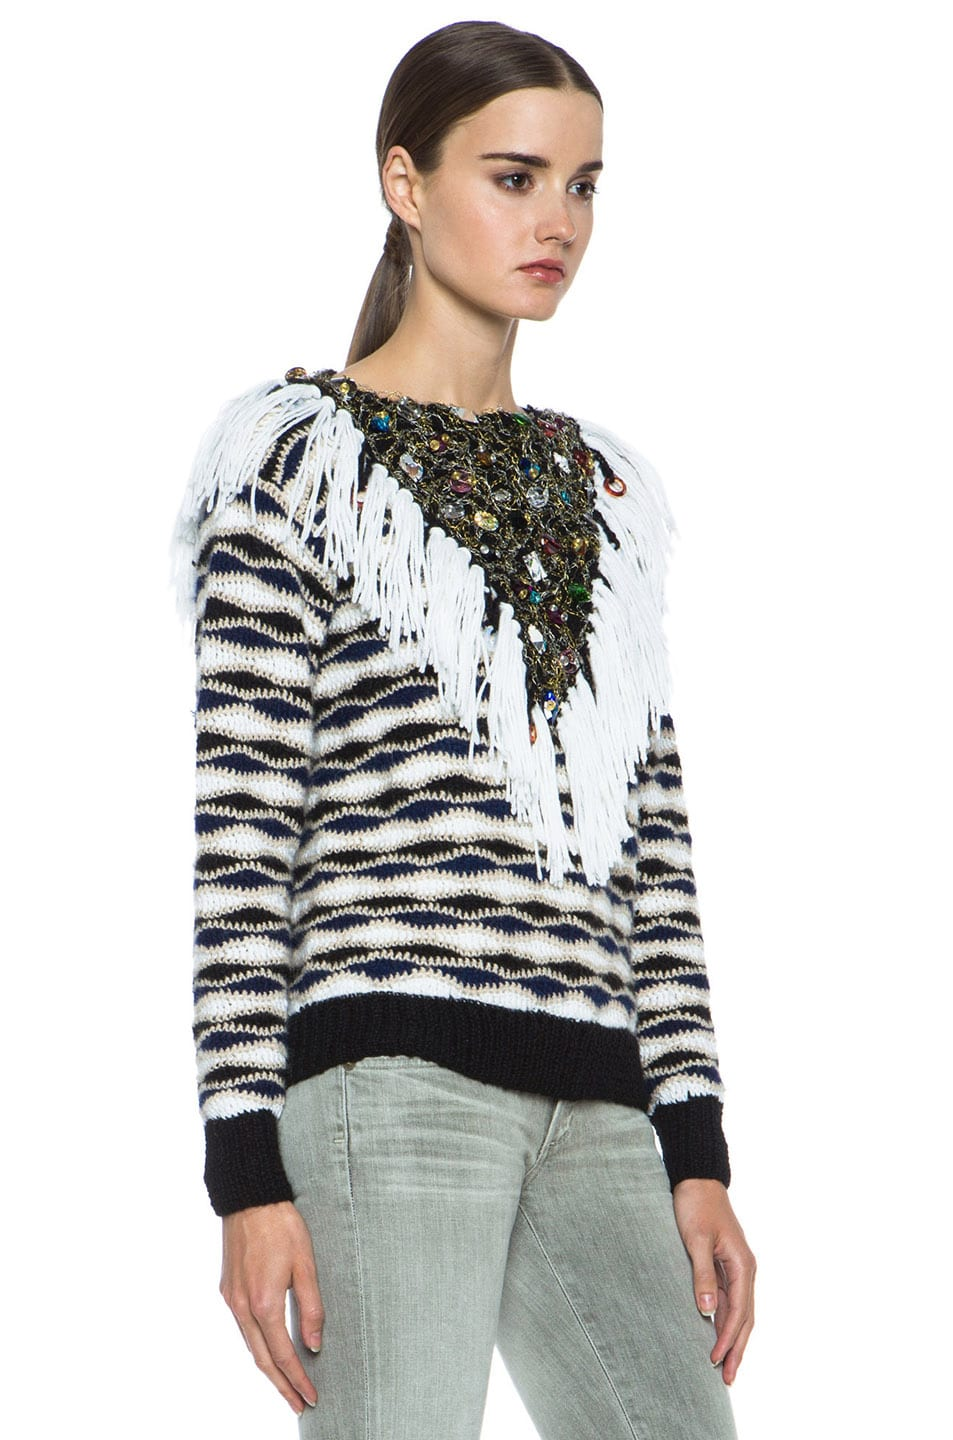 Image 3 of Rodarte Hand Crochet & Knit Sweater with Jeweled Collar in Black & White & Navy